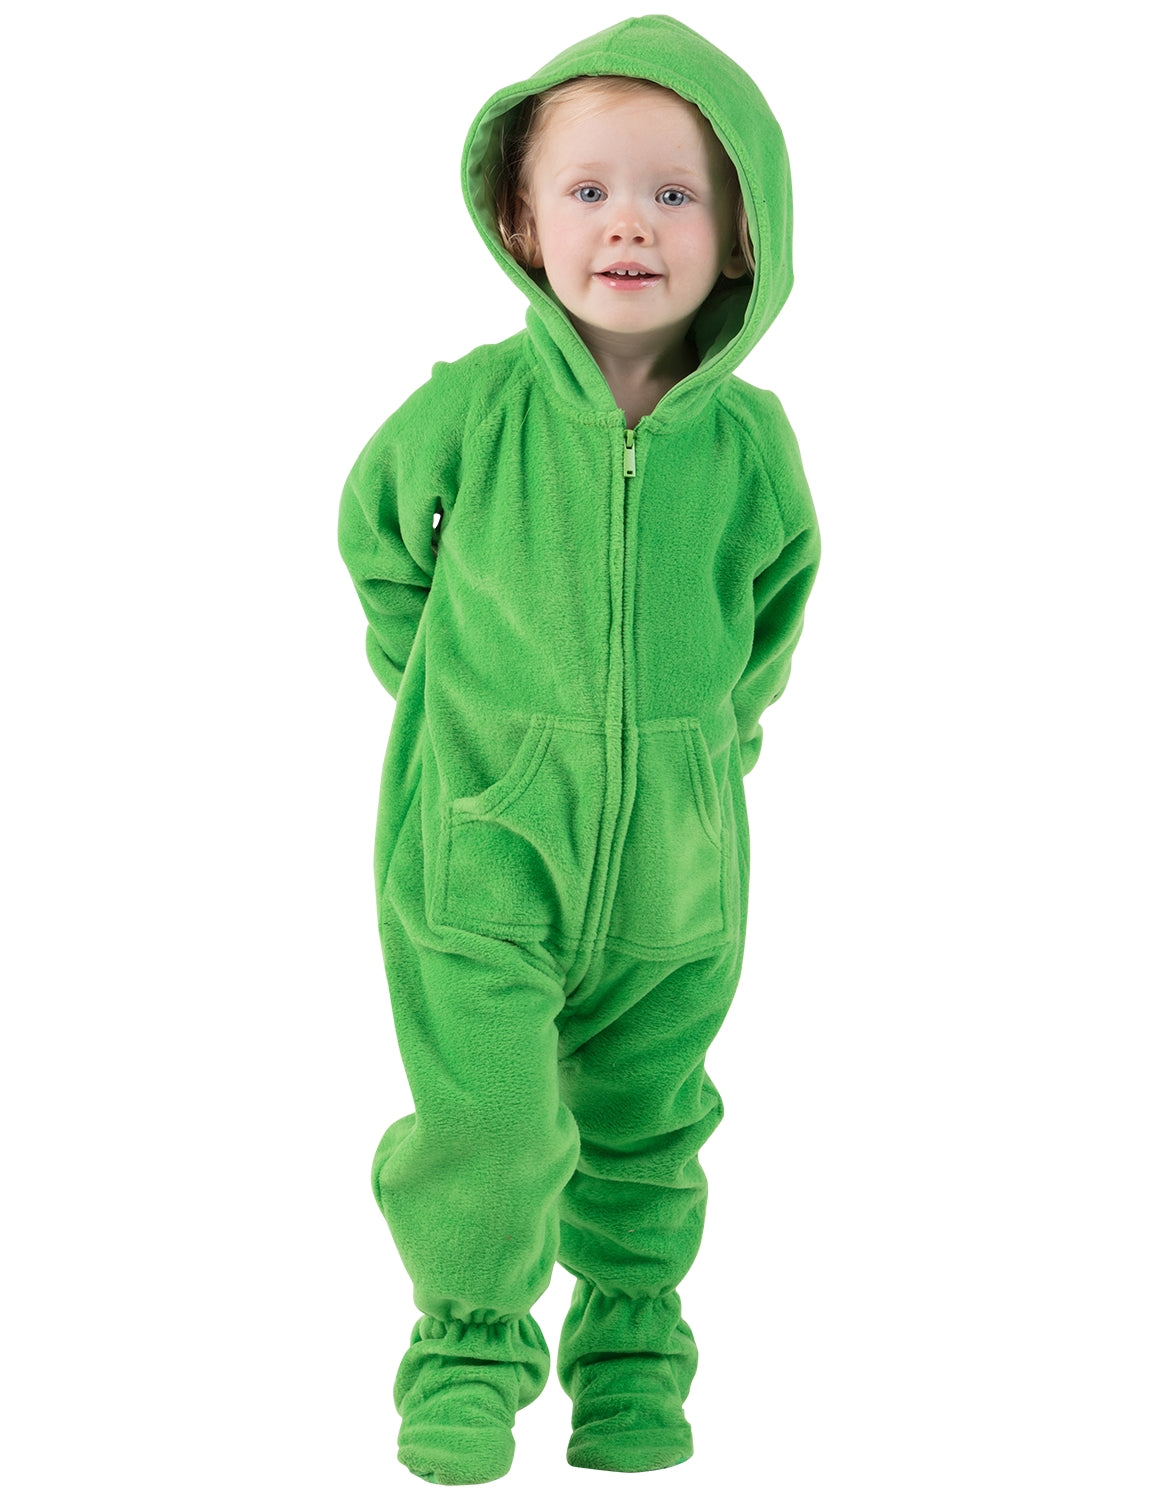 Emerald Green Infant Hoodie Fleece Onesie